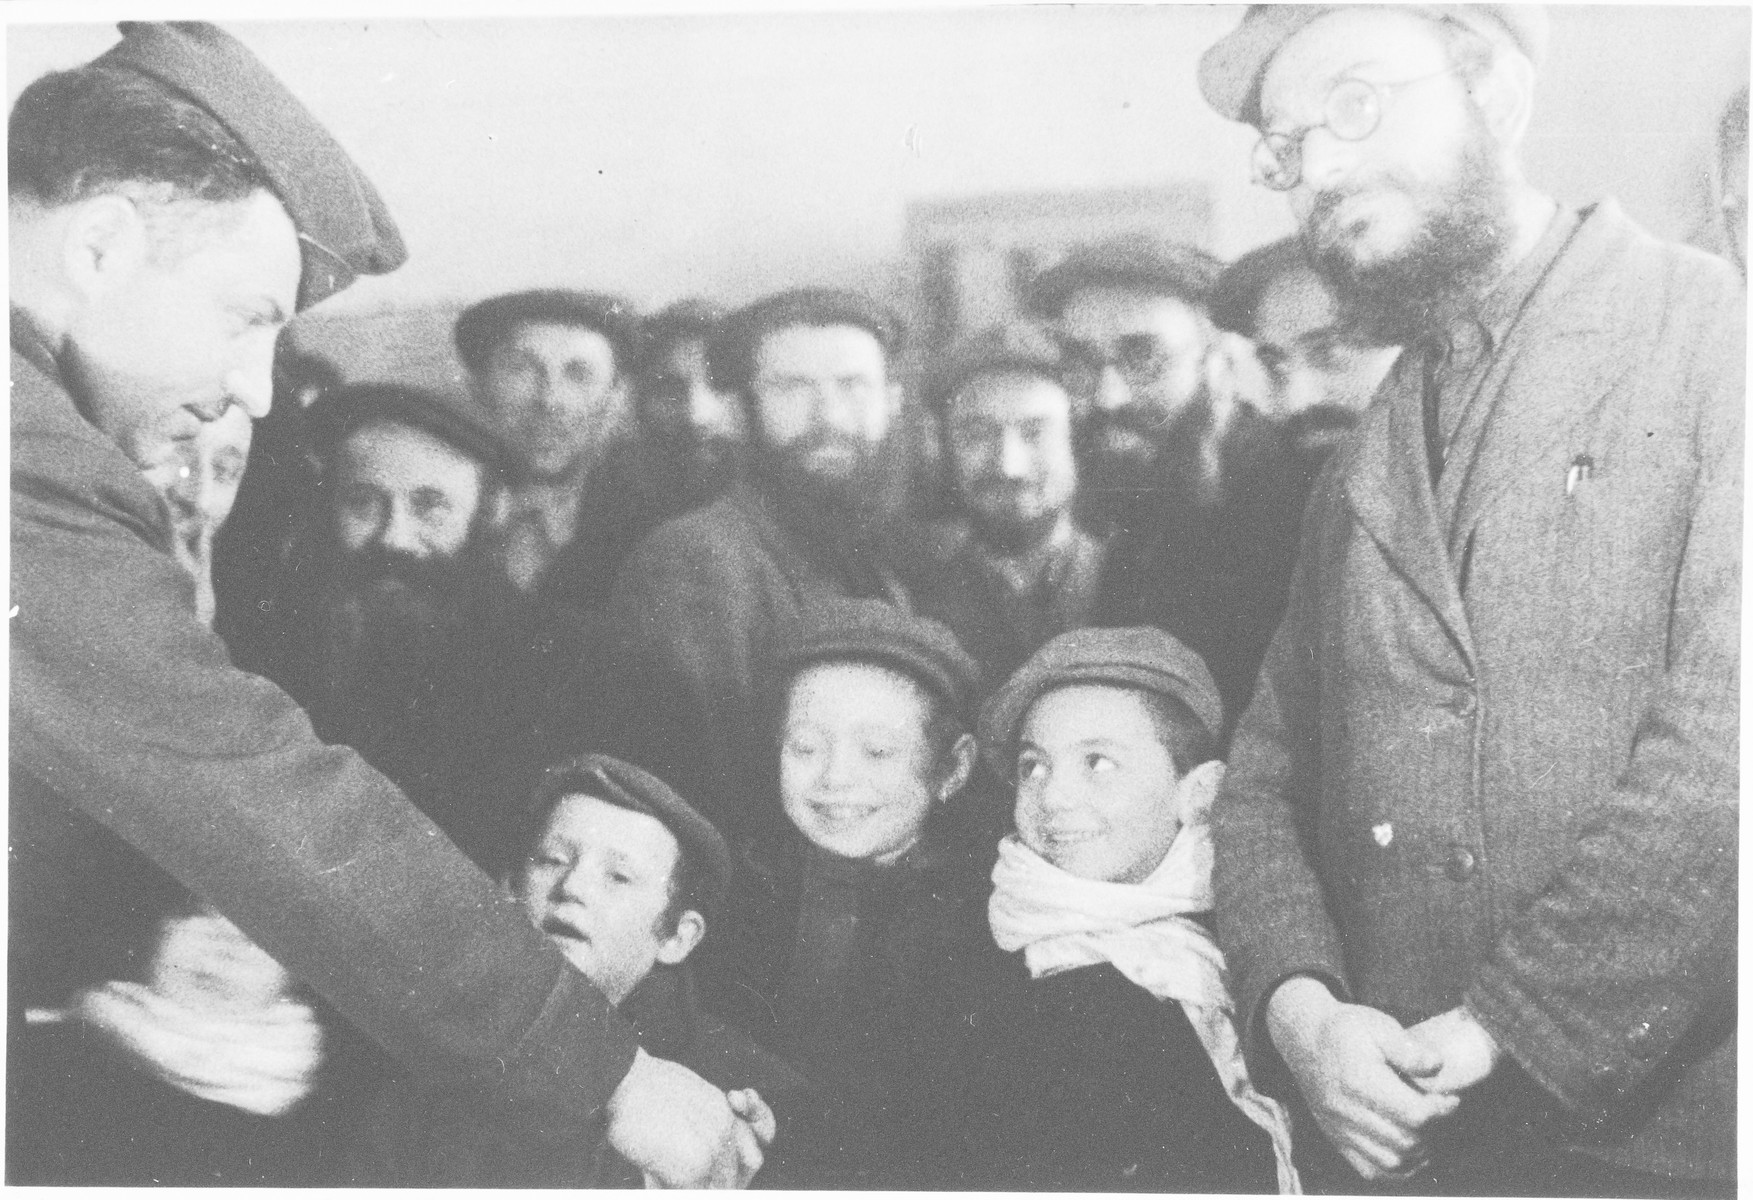 Rabbi Nathan Baruch, of the Vaad Hatzala, meets with young boys in the Pocking displaced persons' camp.